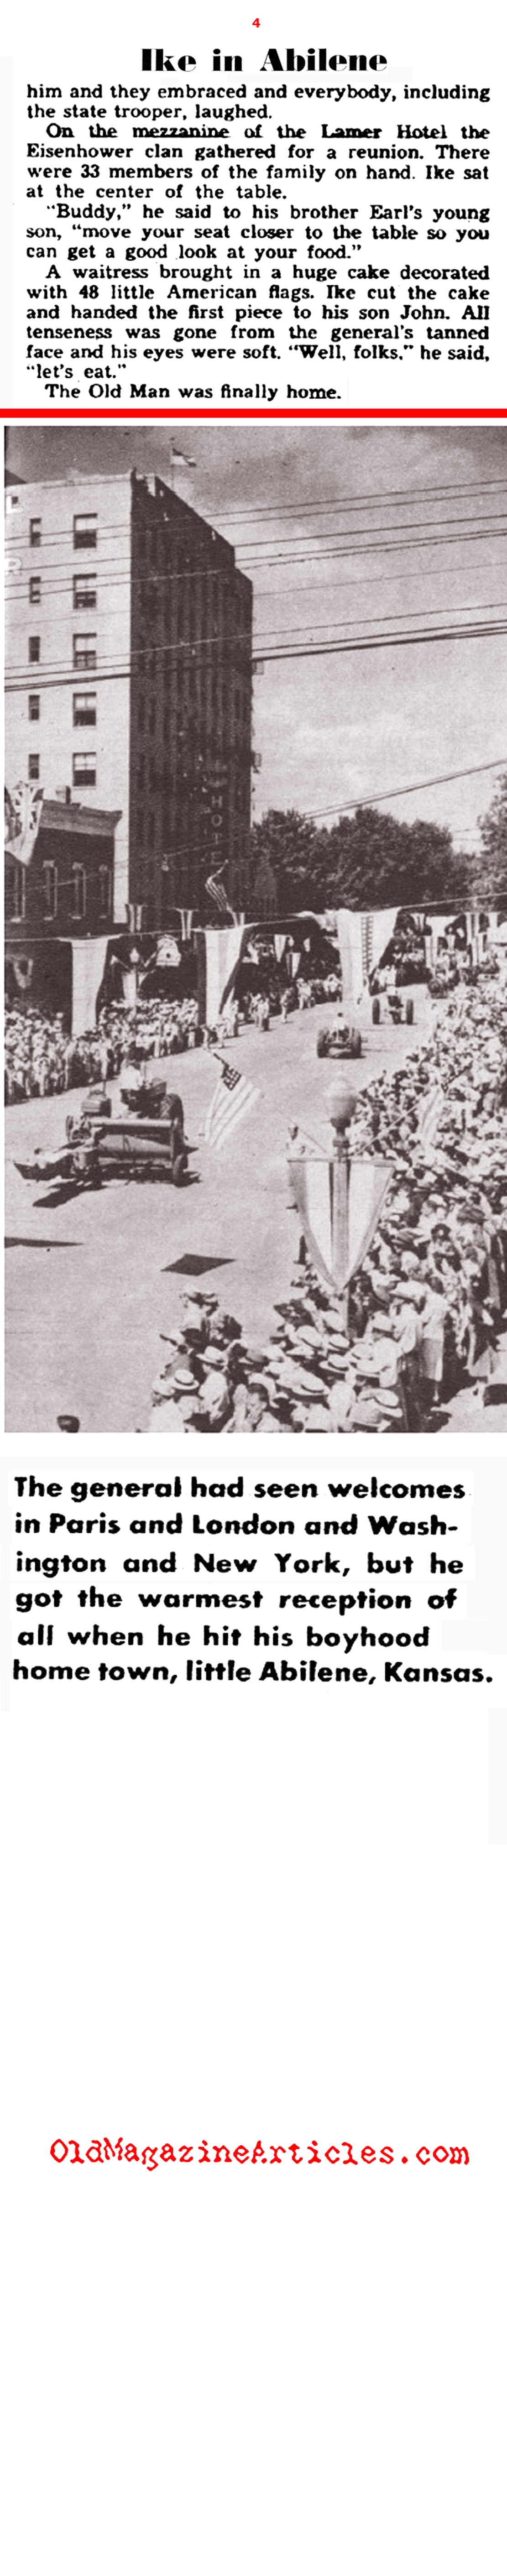 When General Eisenhower Came Home (Yank Magazine, 1945)